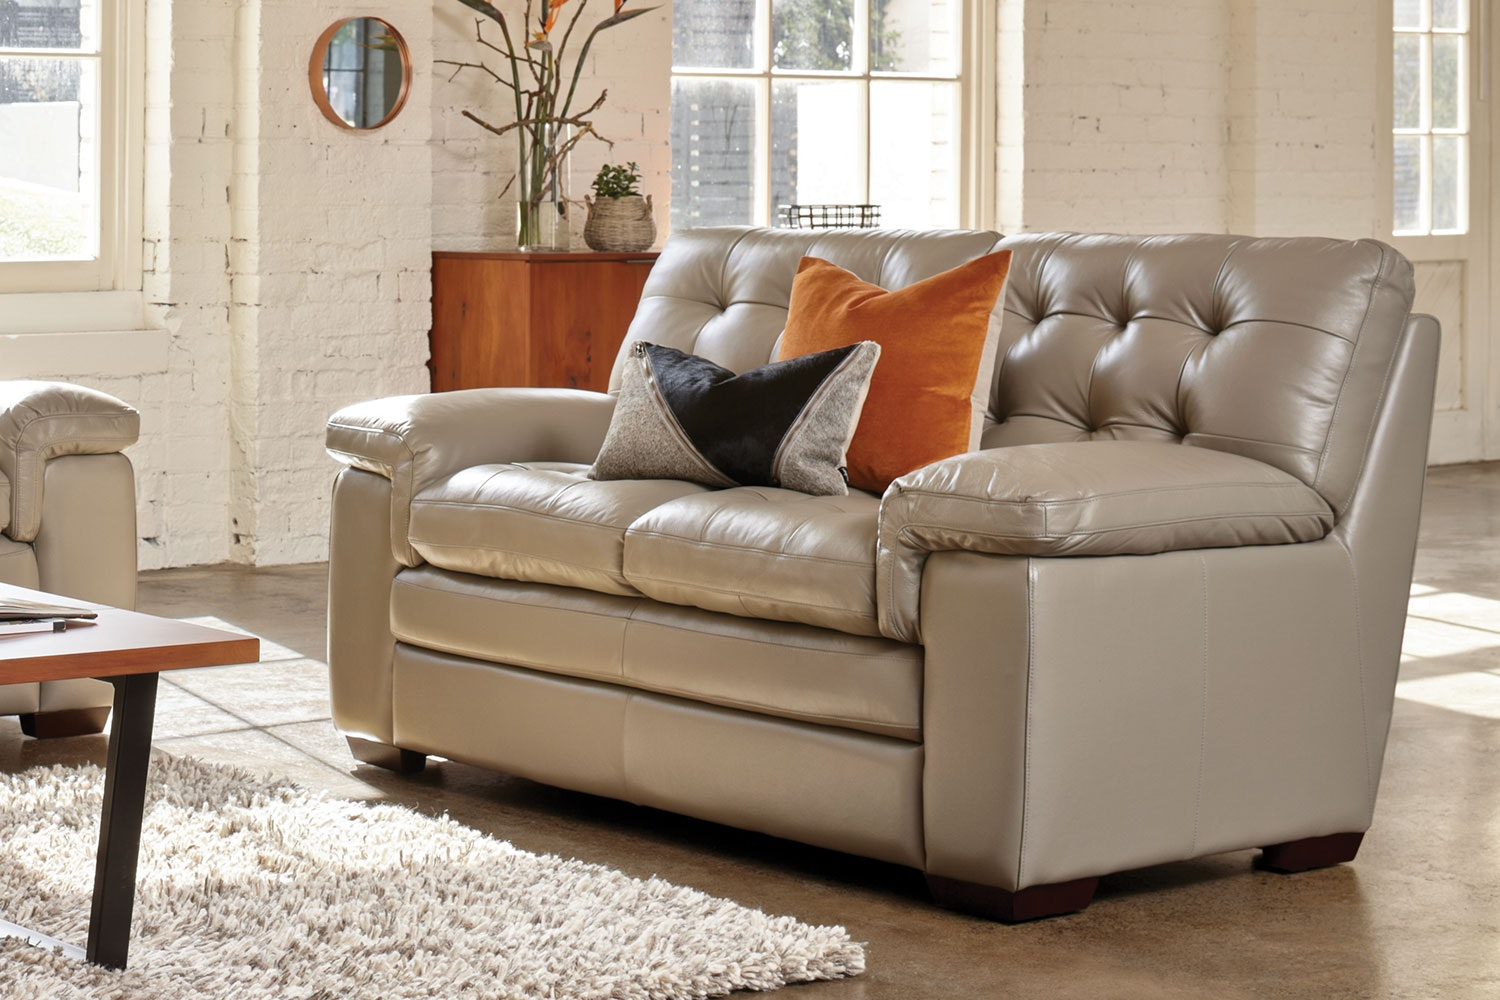 Cullen 2.5 Seater Leather Sofa by La-Z-Boy